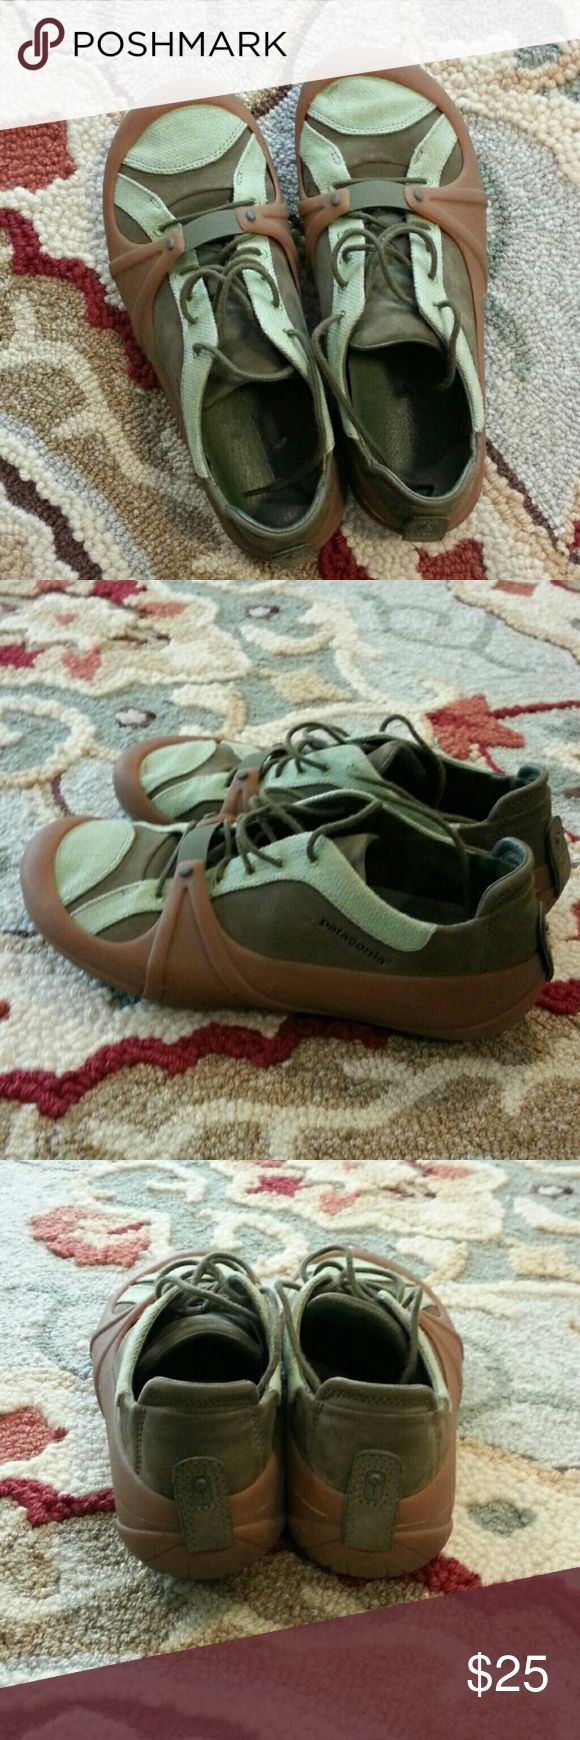 Women's Patagonia sneakers size 9 Women's Patagonia green and brown sneakers size 9.  Worn three times. Patagonia Shoes Sneakers